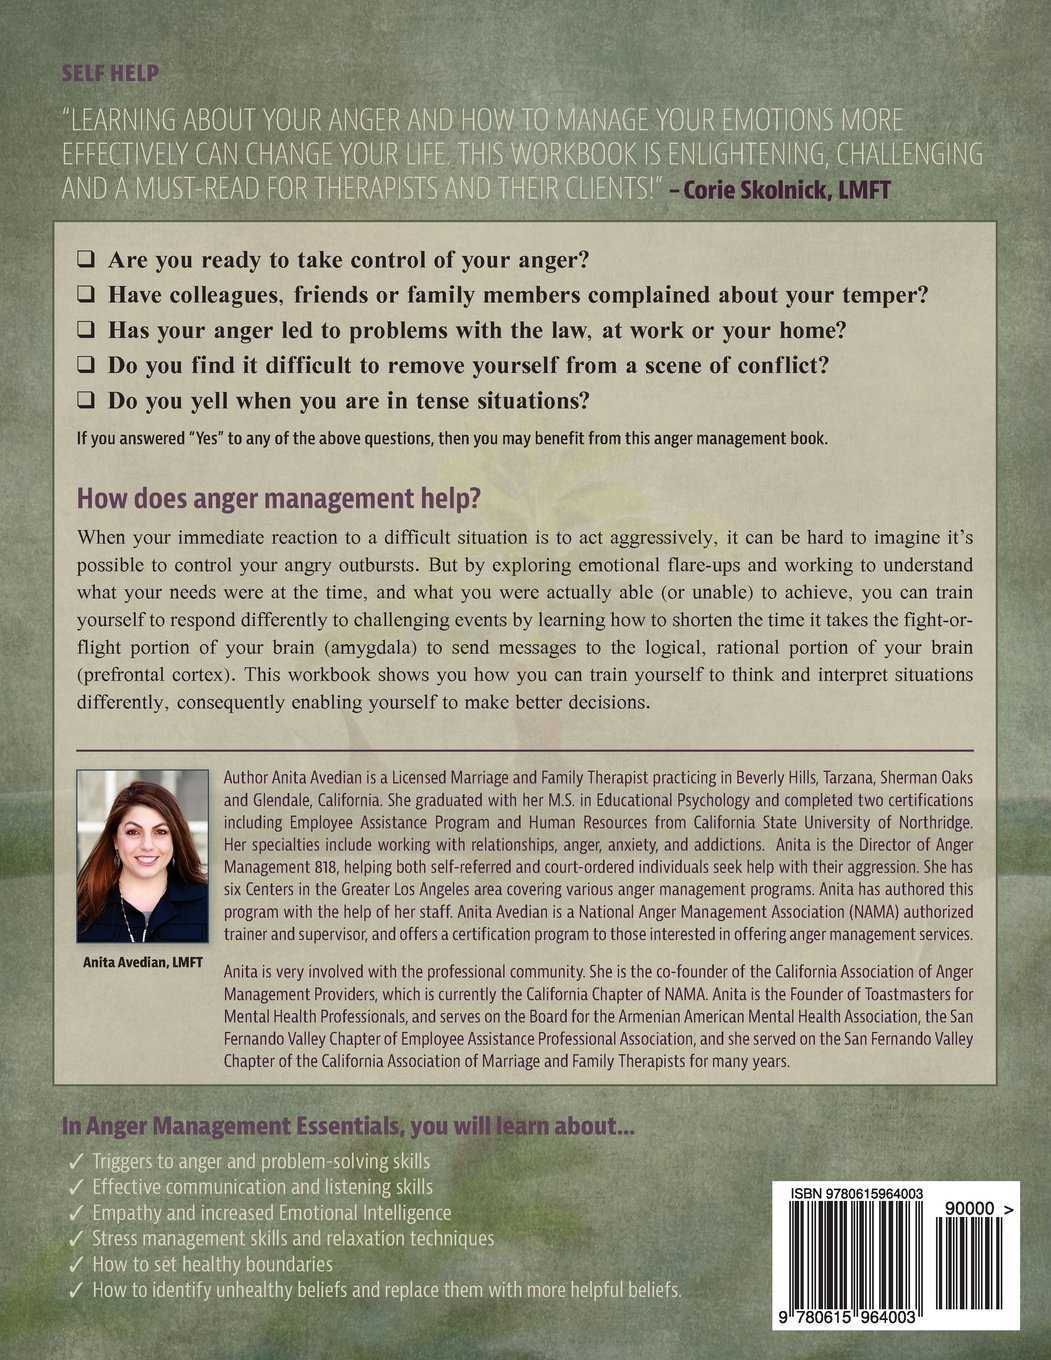 Amazon.com: Anger Management Essentials: A Workbook for People to ...